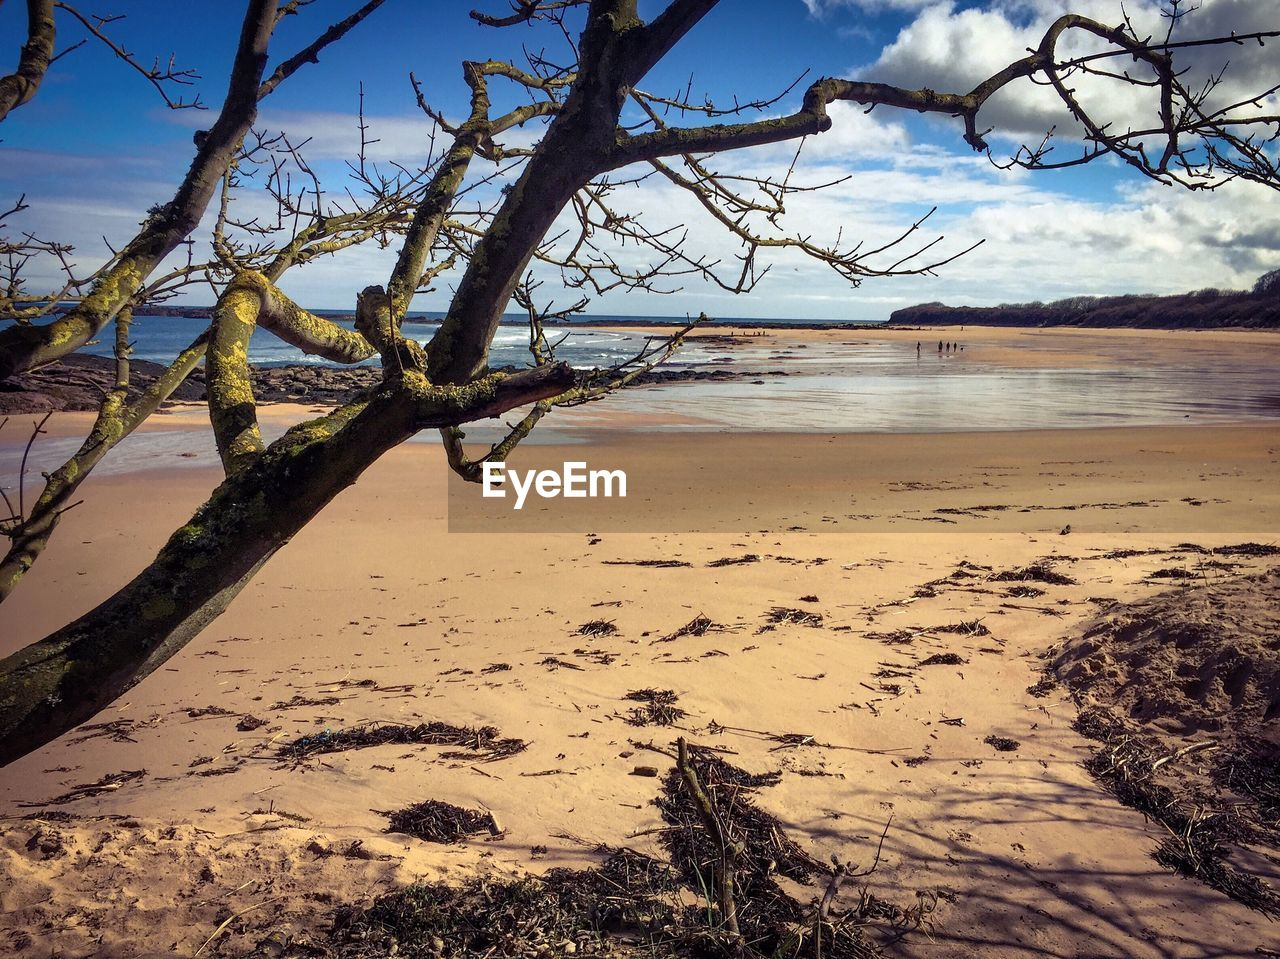 beach, nature, sea, beauty in nature, sand, tree, tranquility, scenics, sky, tranquil scene, water, branch, shore, horizon over water, bare tree, outdoors, no people, day, landscape, dead tree